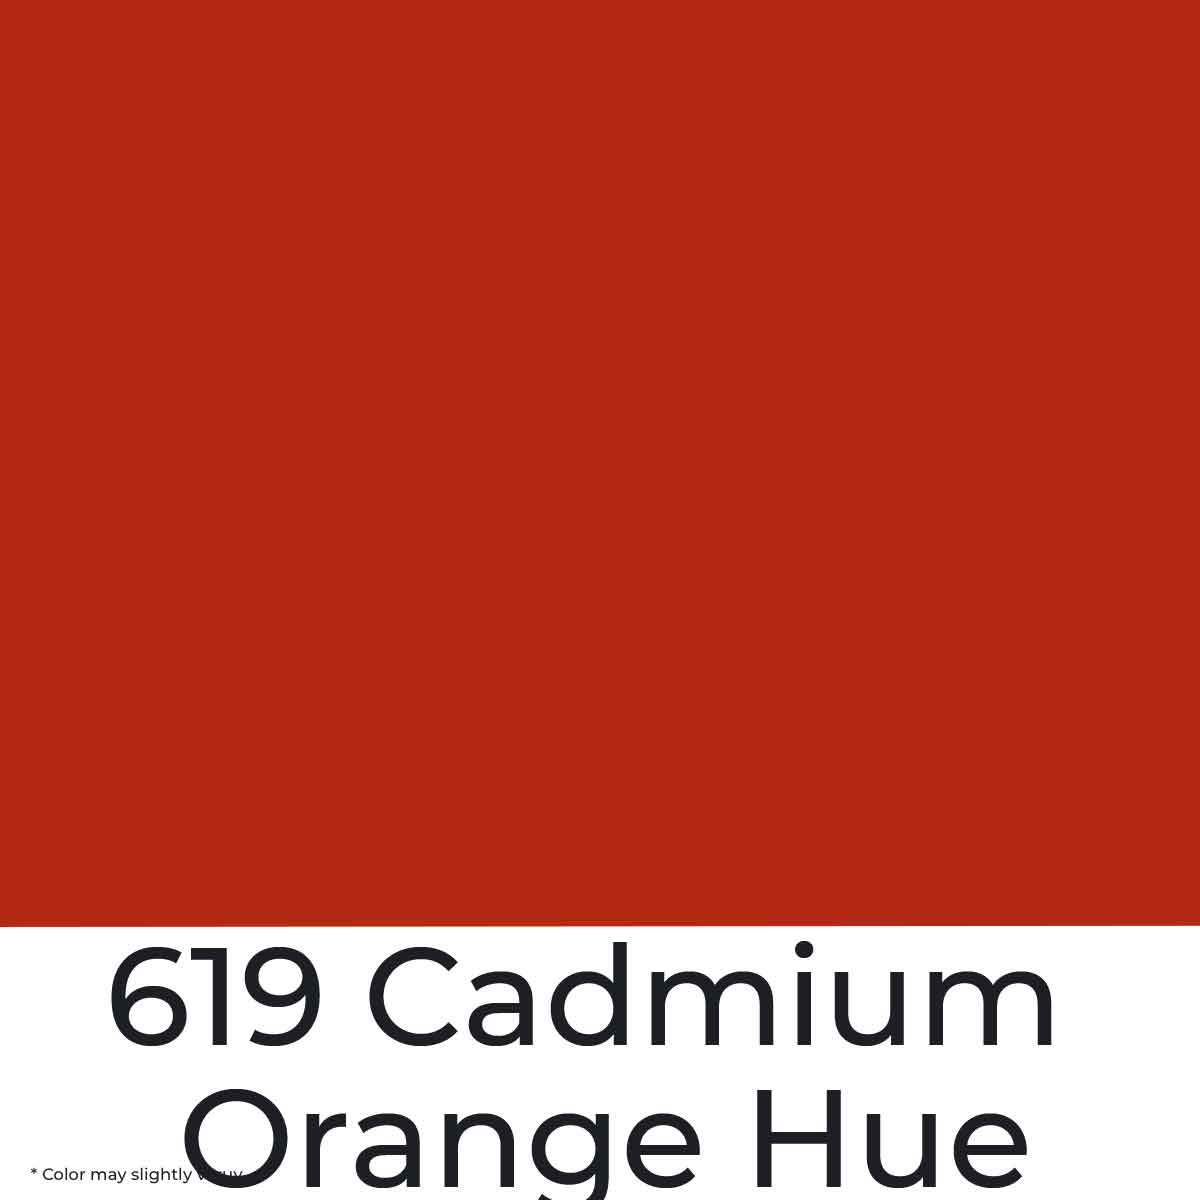 Daler Rowney Acrylic Paint - Cadmium Orange Hue 619 from najmaonline.com